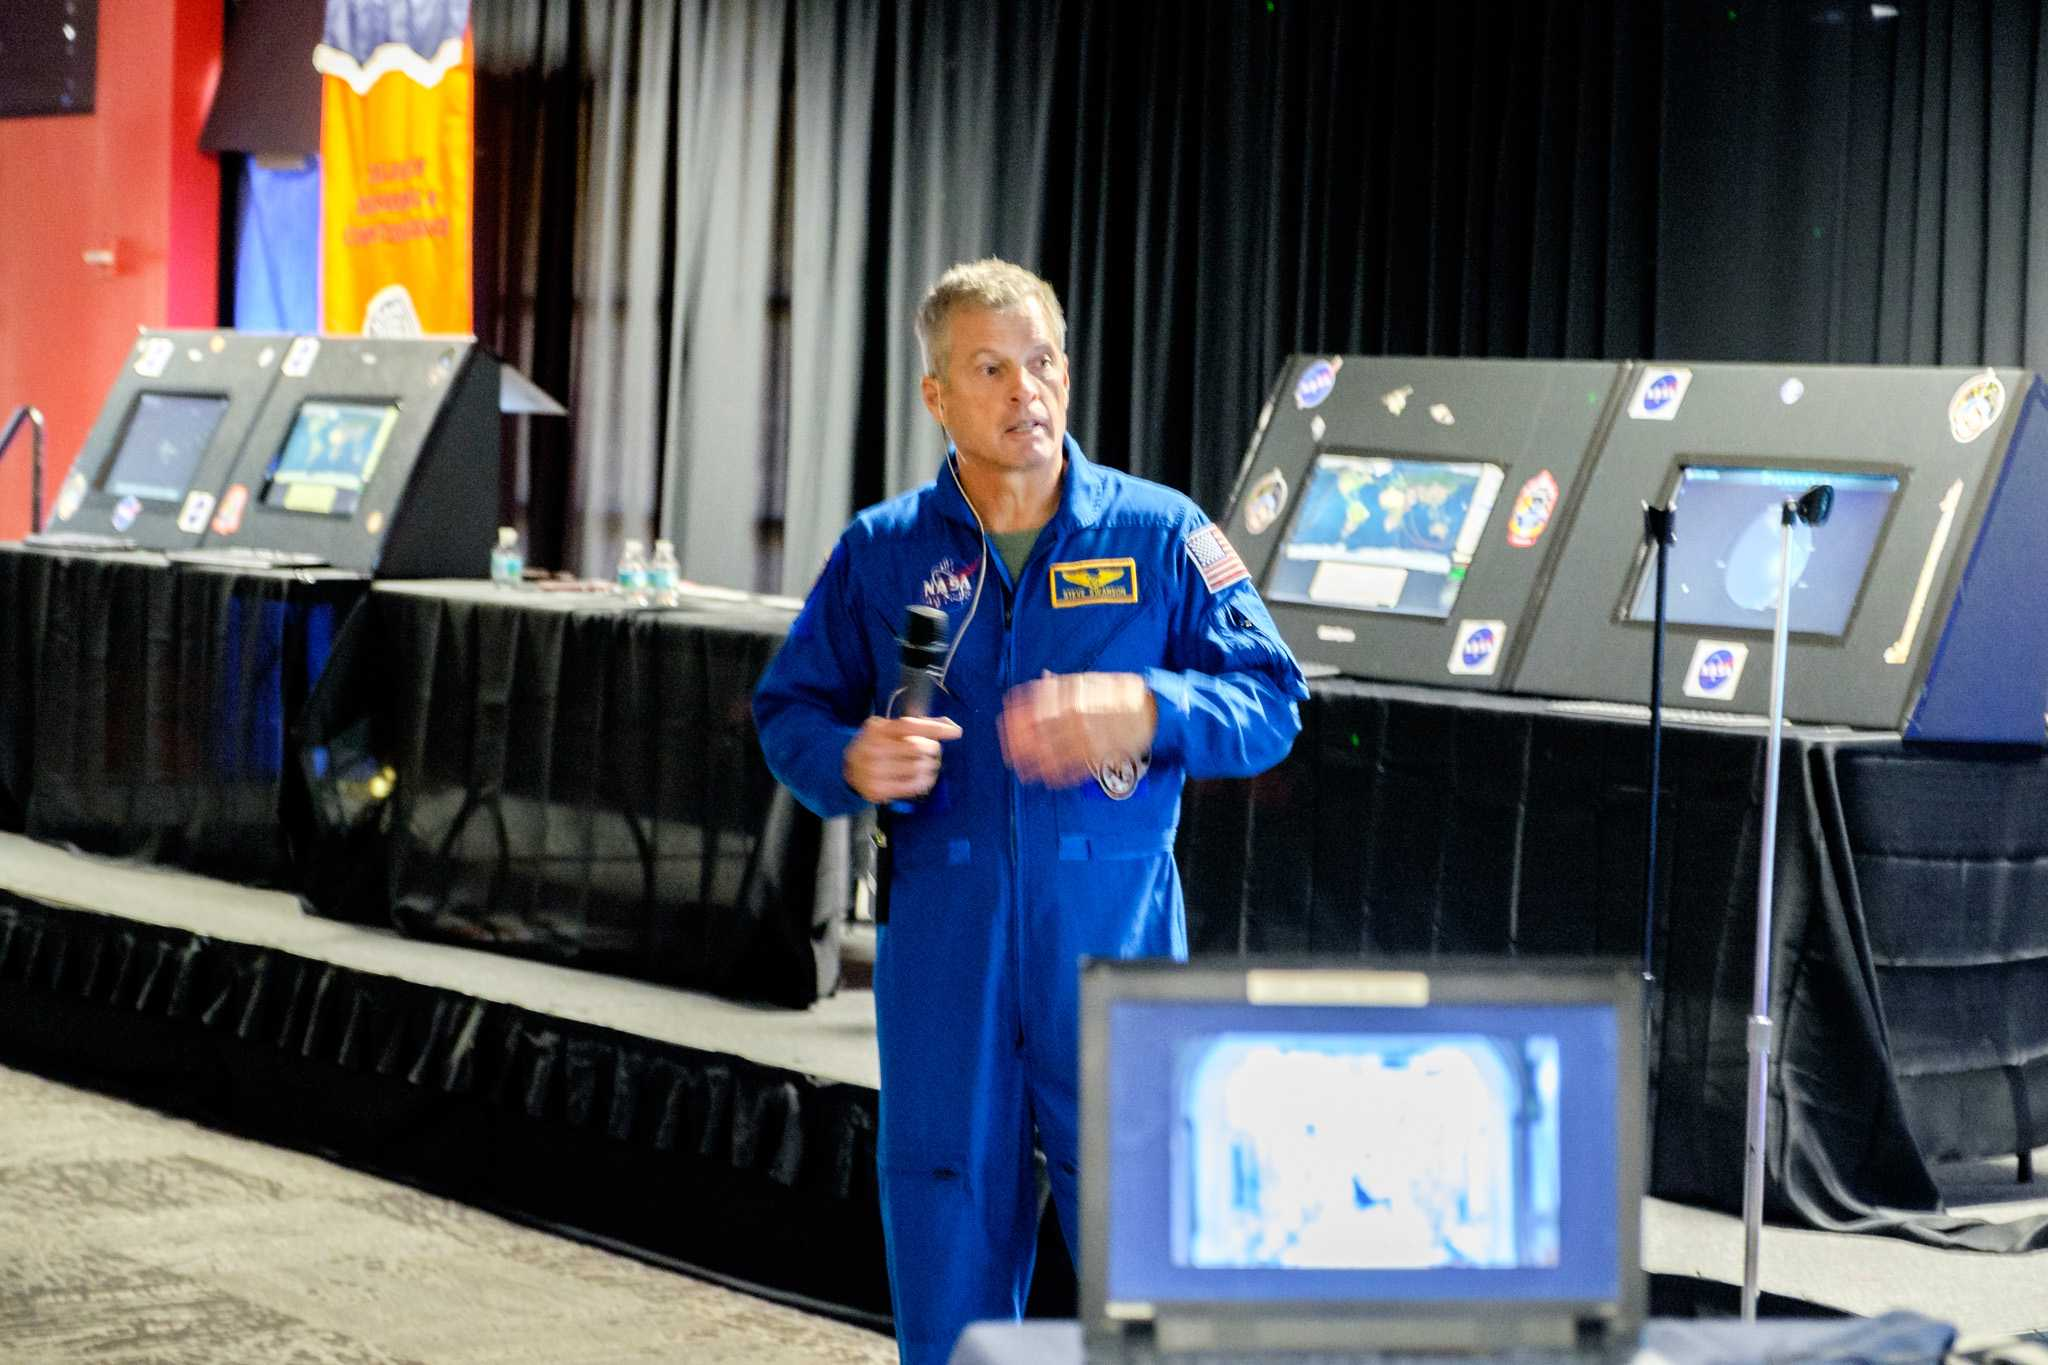 Astronaut Steven R. Swanson talks about what he did on the International Space Station. He is the first person to take a selfie on the ISS. Mohammed F Emran | Asst. Creative Director